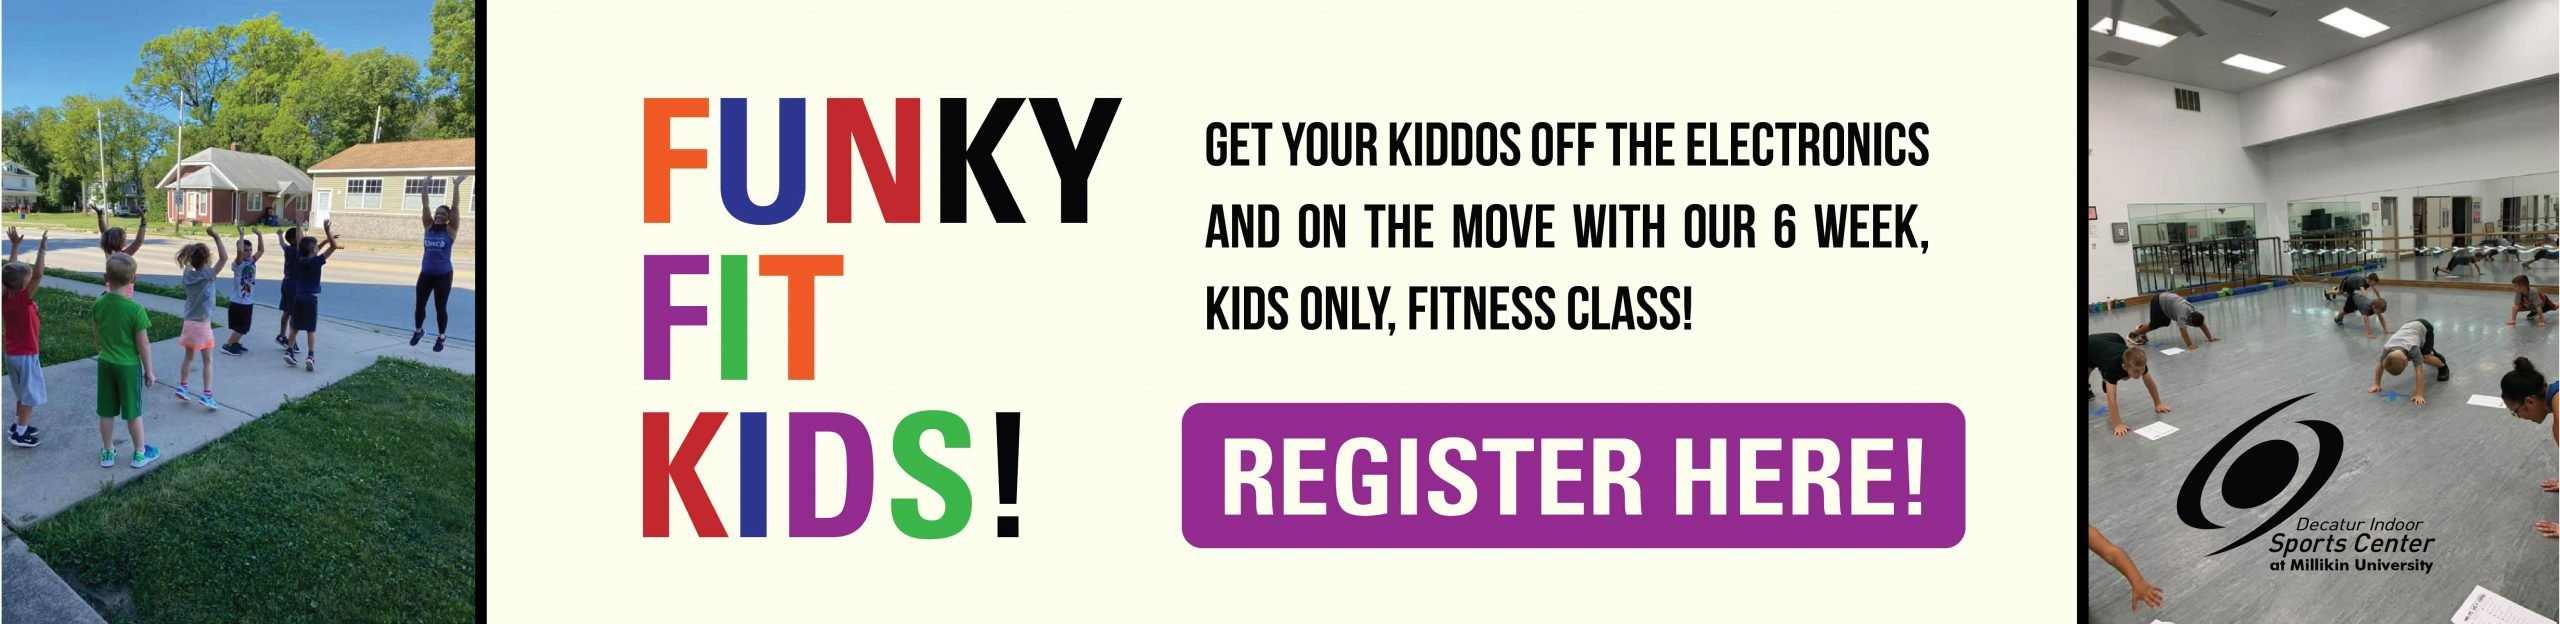 FunkyFitKids_2020-01